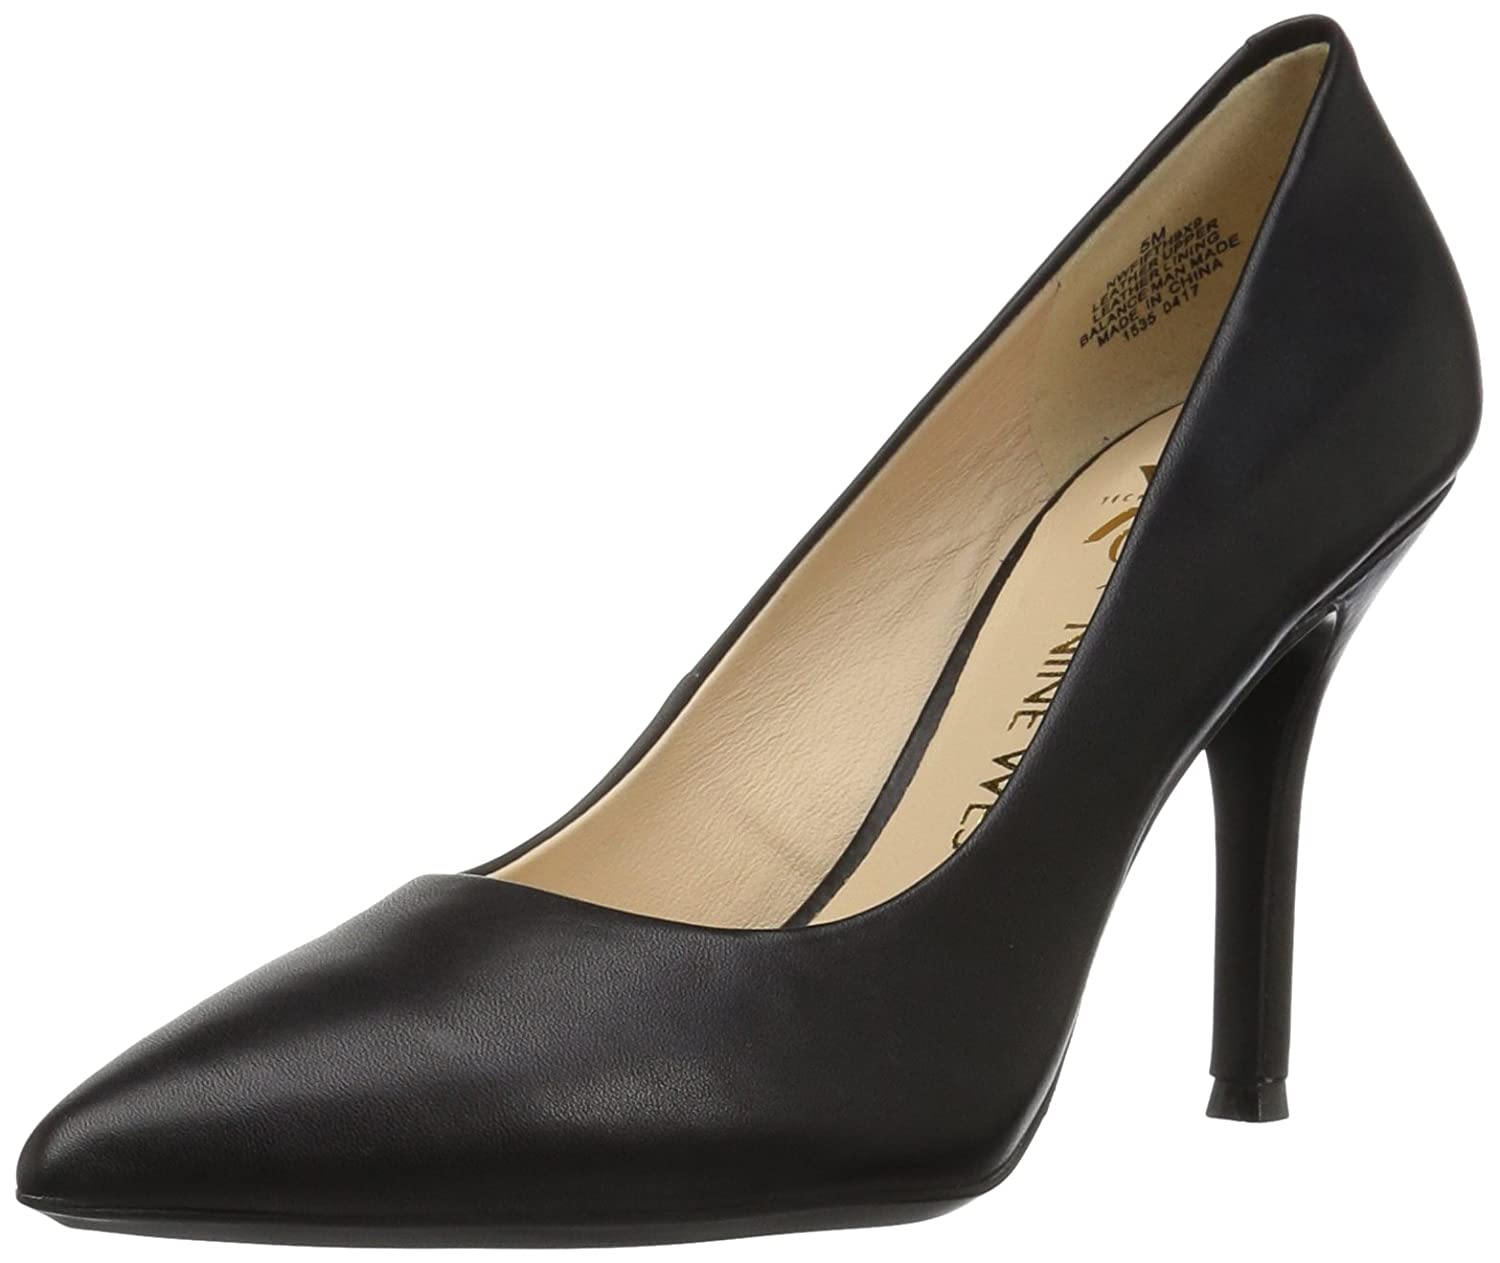 Nine West Women's FIFTH9X Fifth Pointy Toe Pumps B01N1NRKKP 6.5 B(M) US|Black Calf Leather